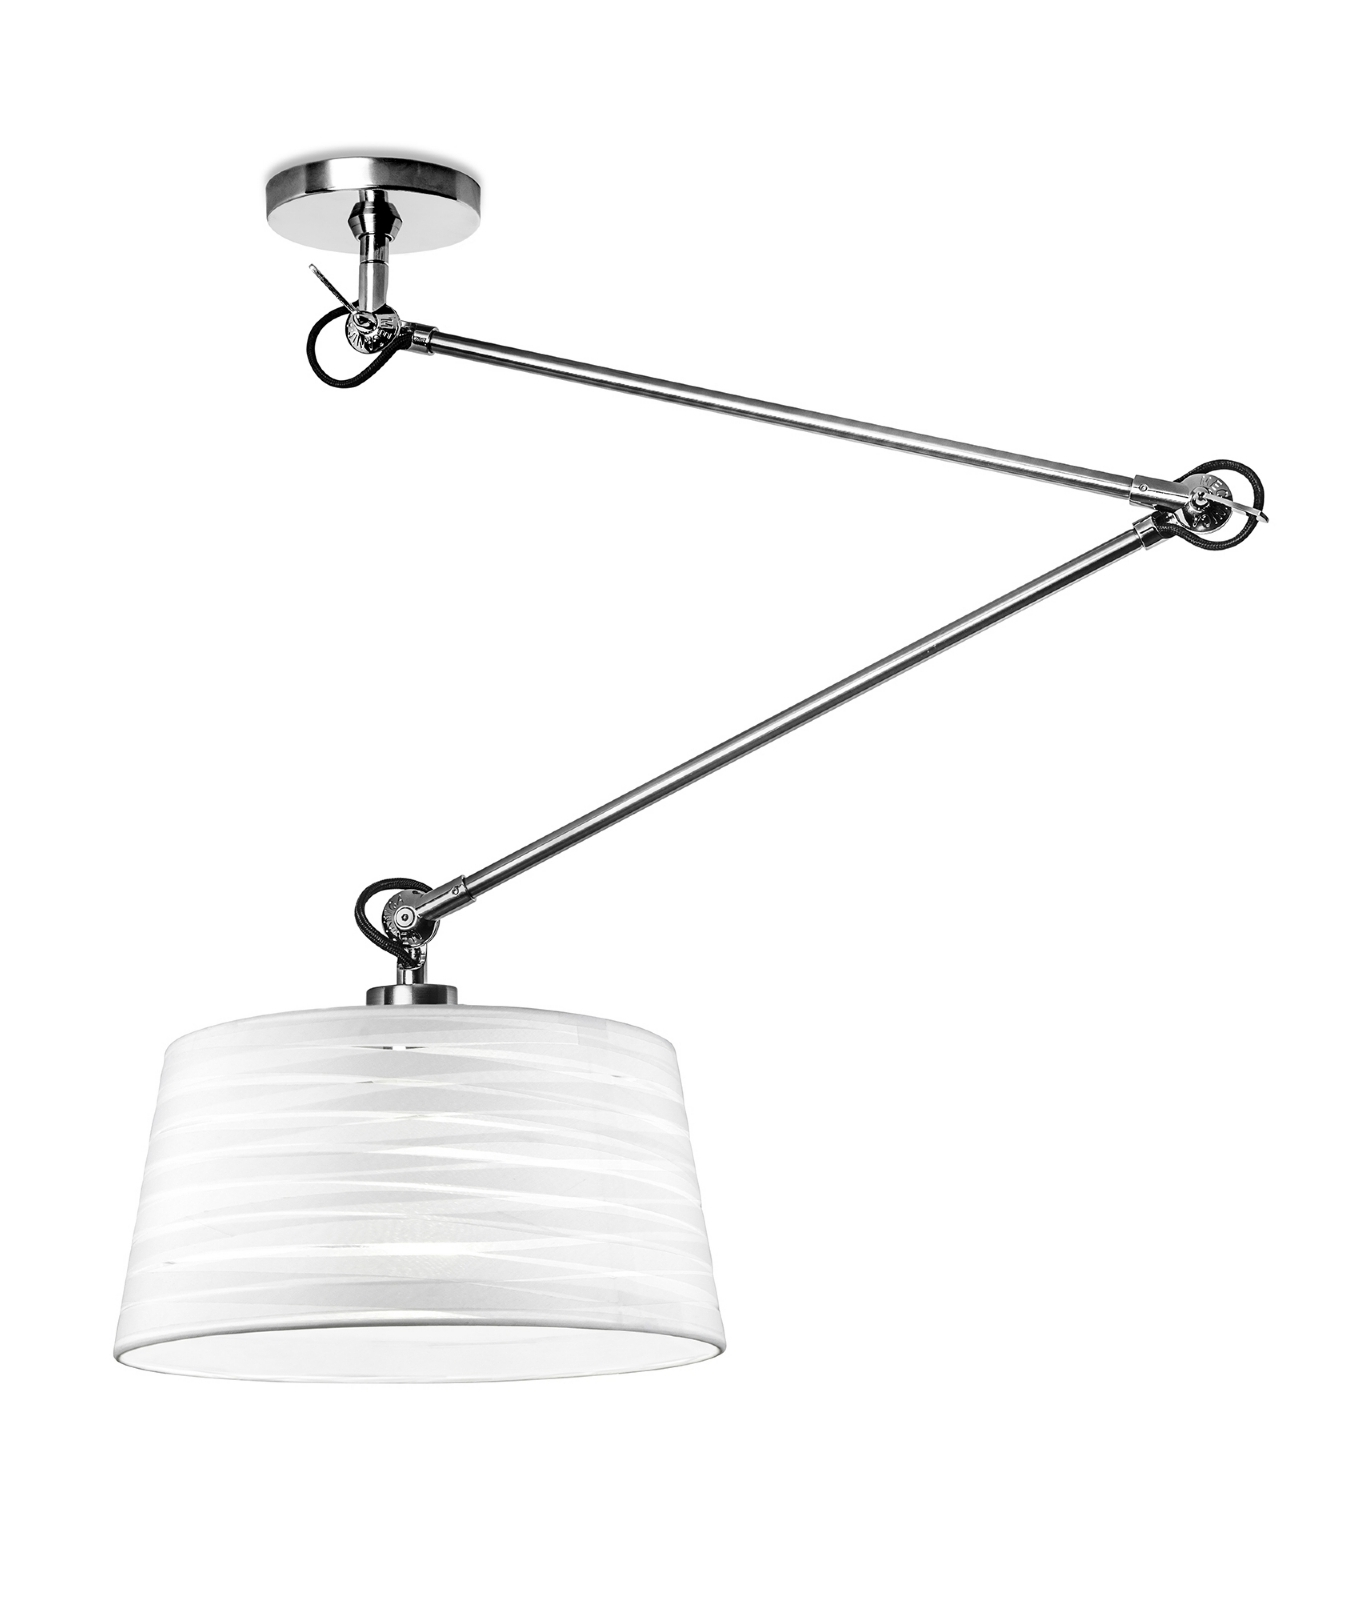 Dual function long reach wall or ceiling fitting with shade long reach wall or ceiling light with shade mozeypictures Image collections